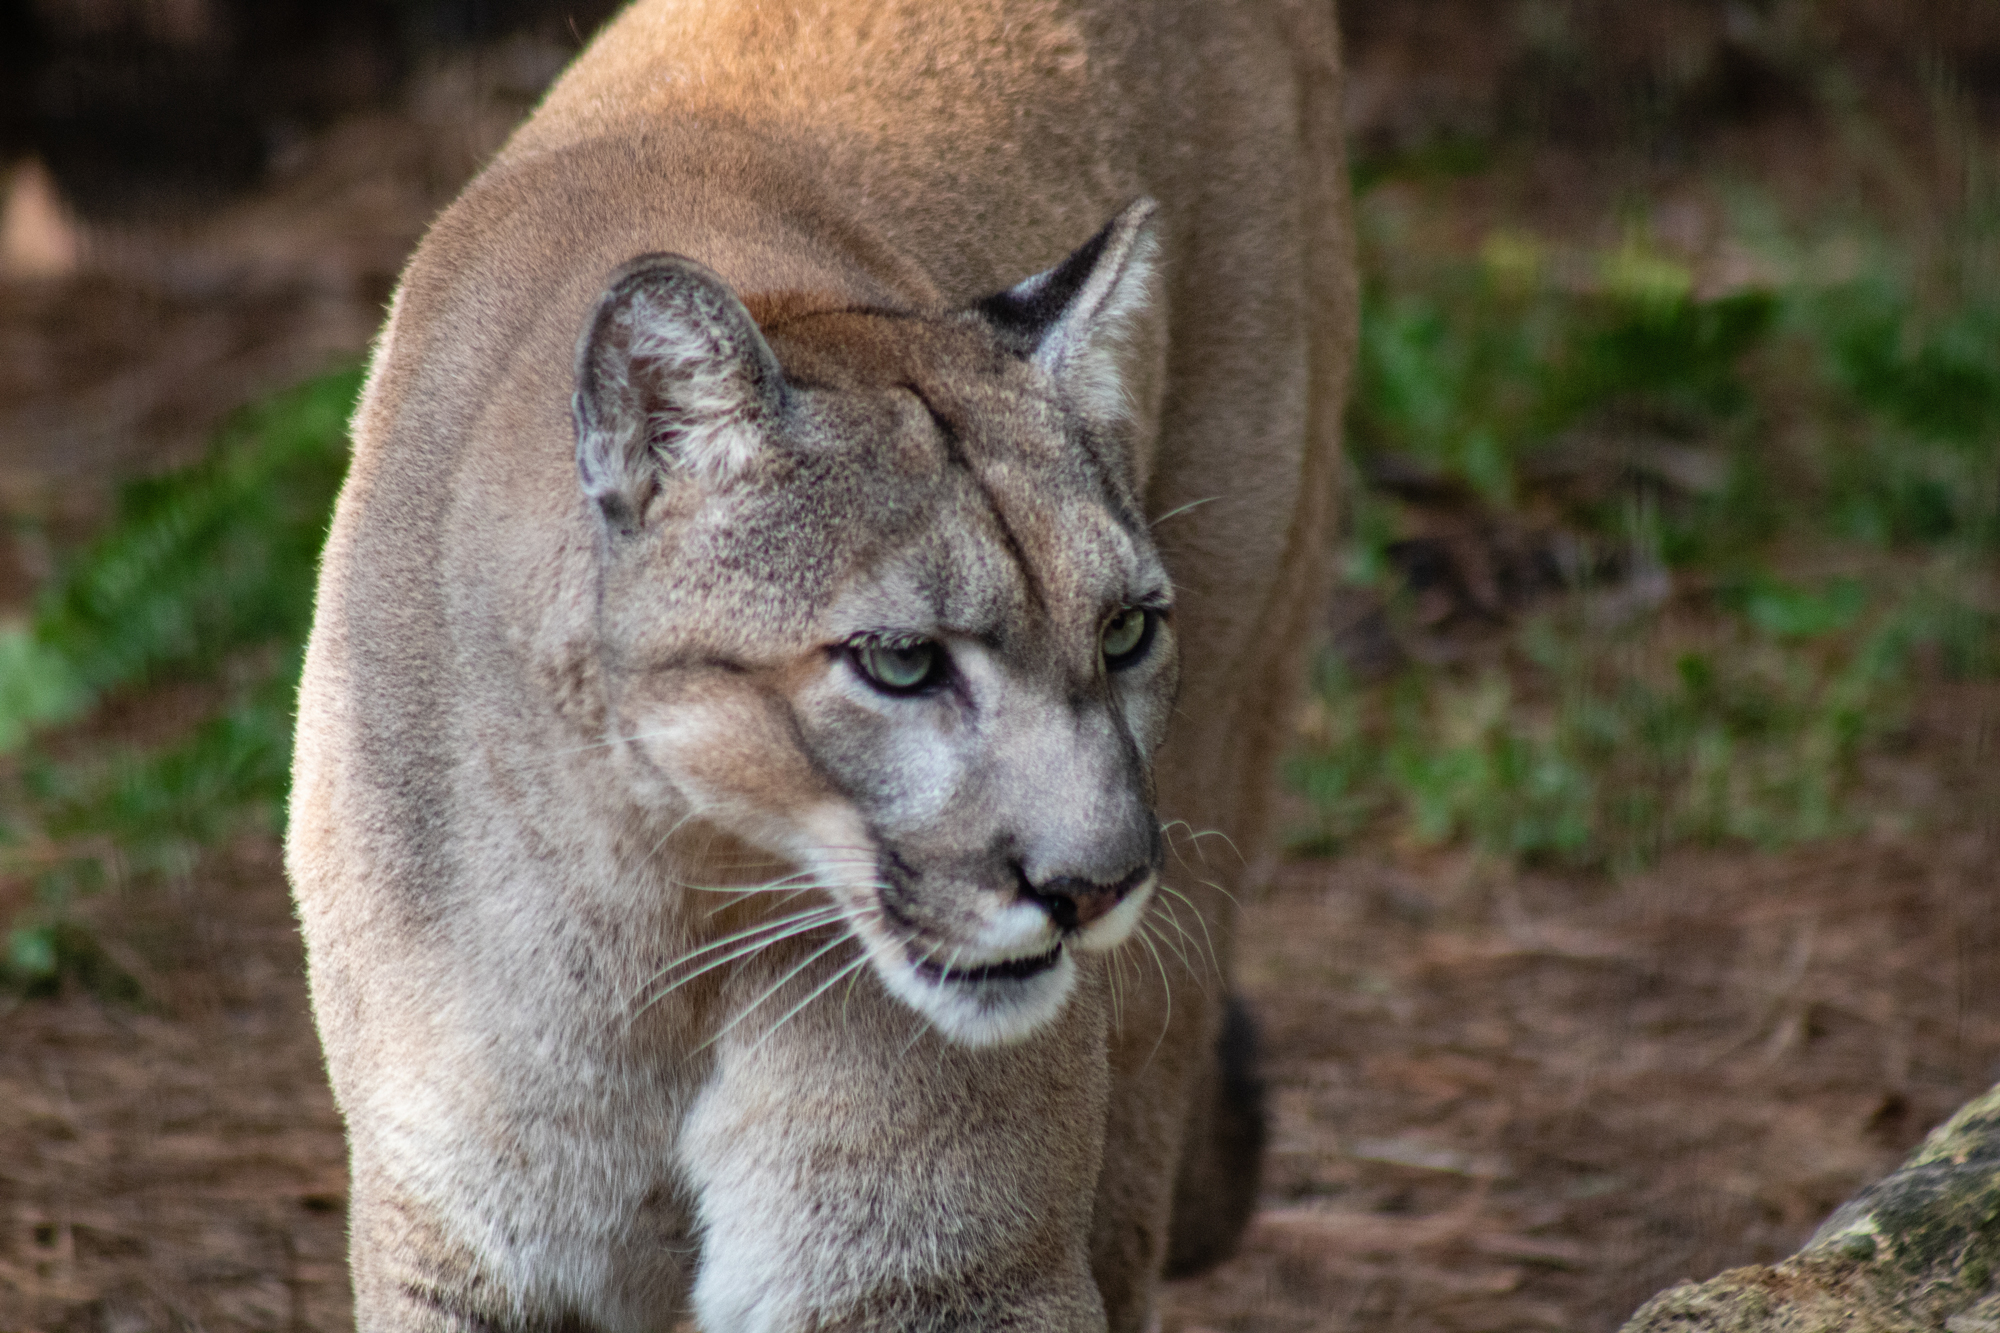 The endangered Florida panther is one of the many species found in the Florida Everglades.